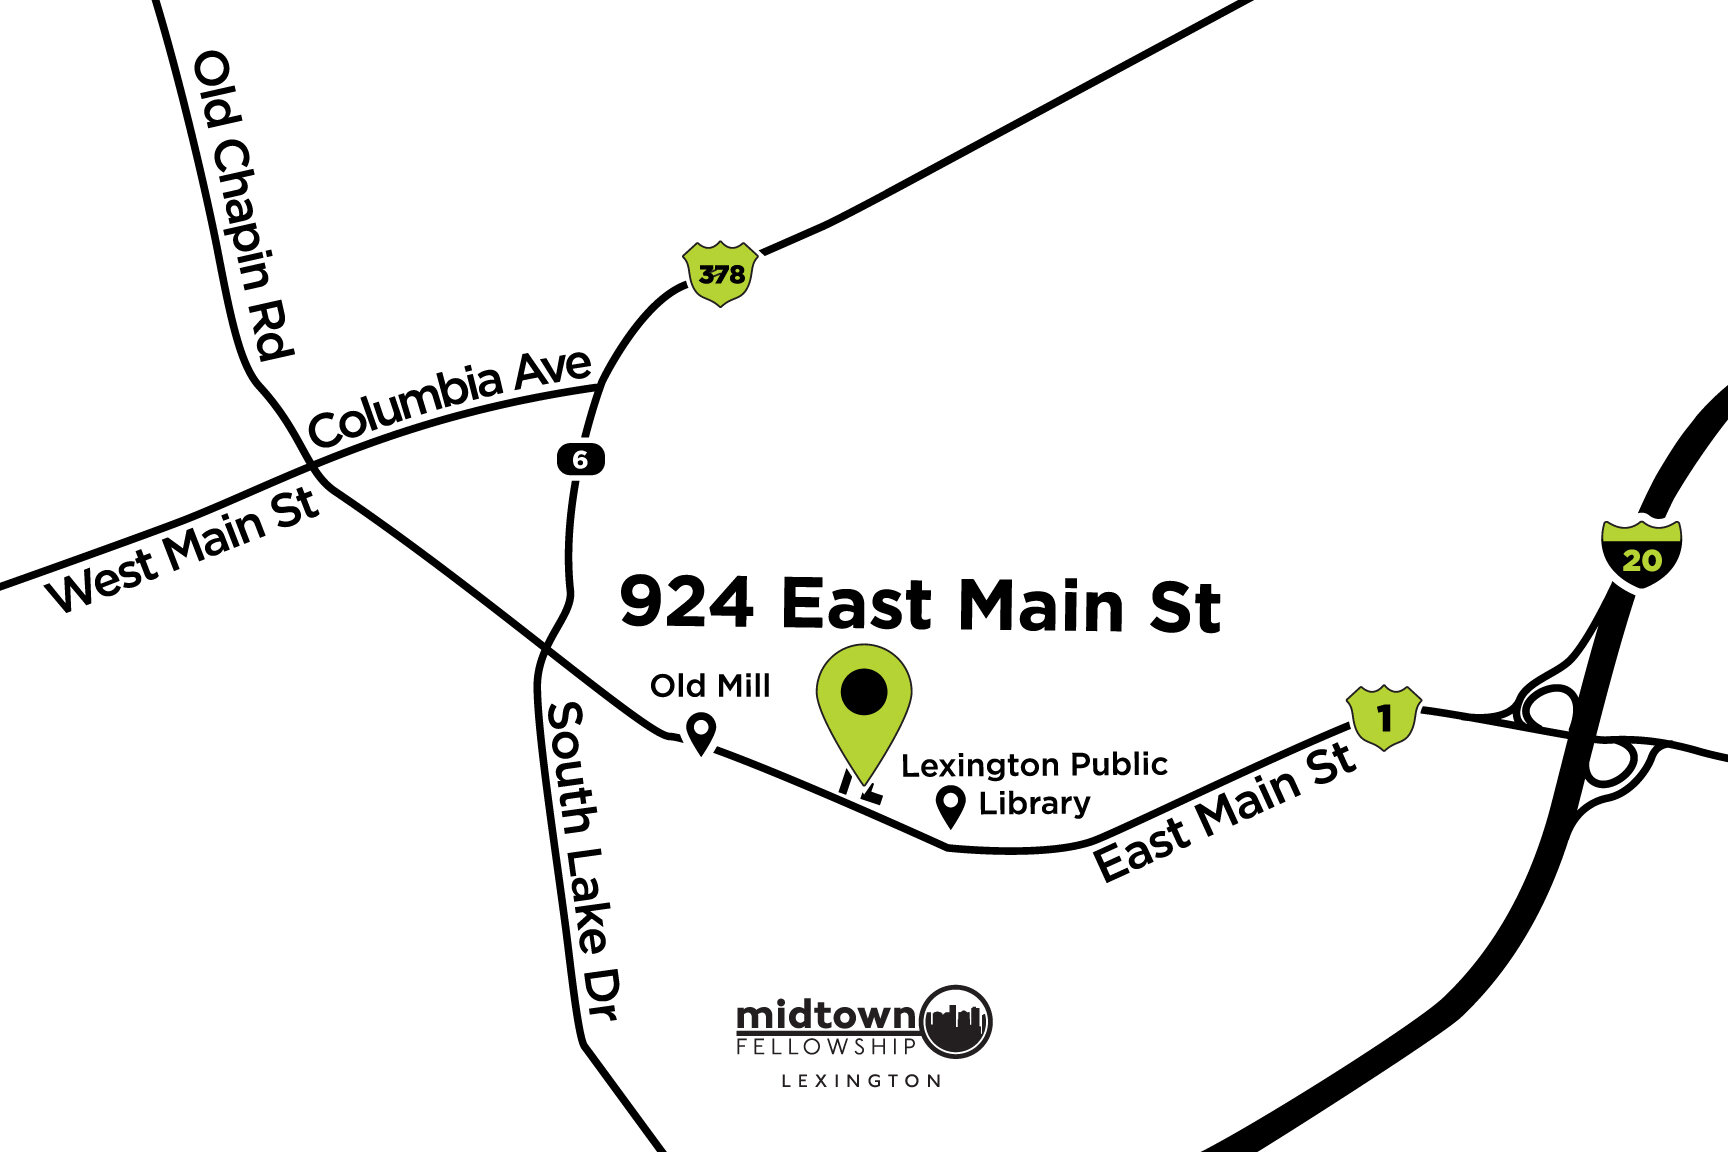 The proposed new location is 924 E. Main St. The building resides in the heart of Lexington, right off I-20 with quick access to surrounding areas.